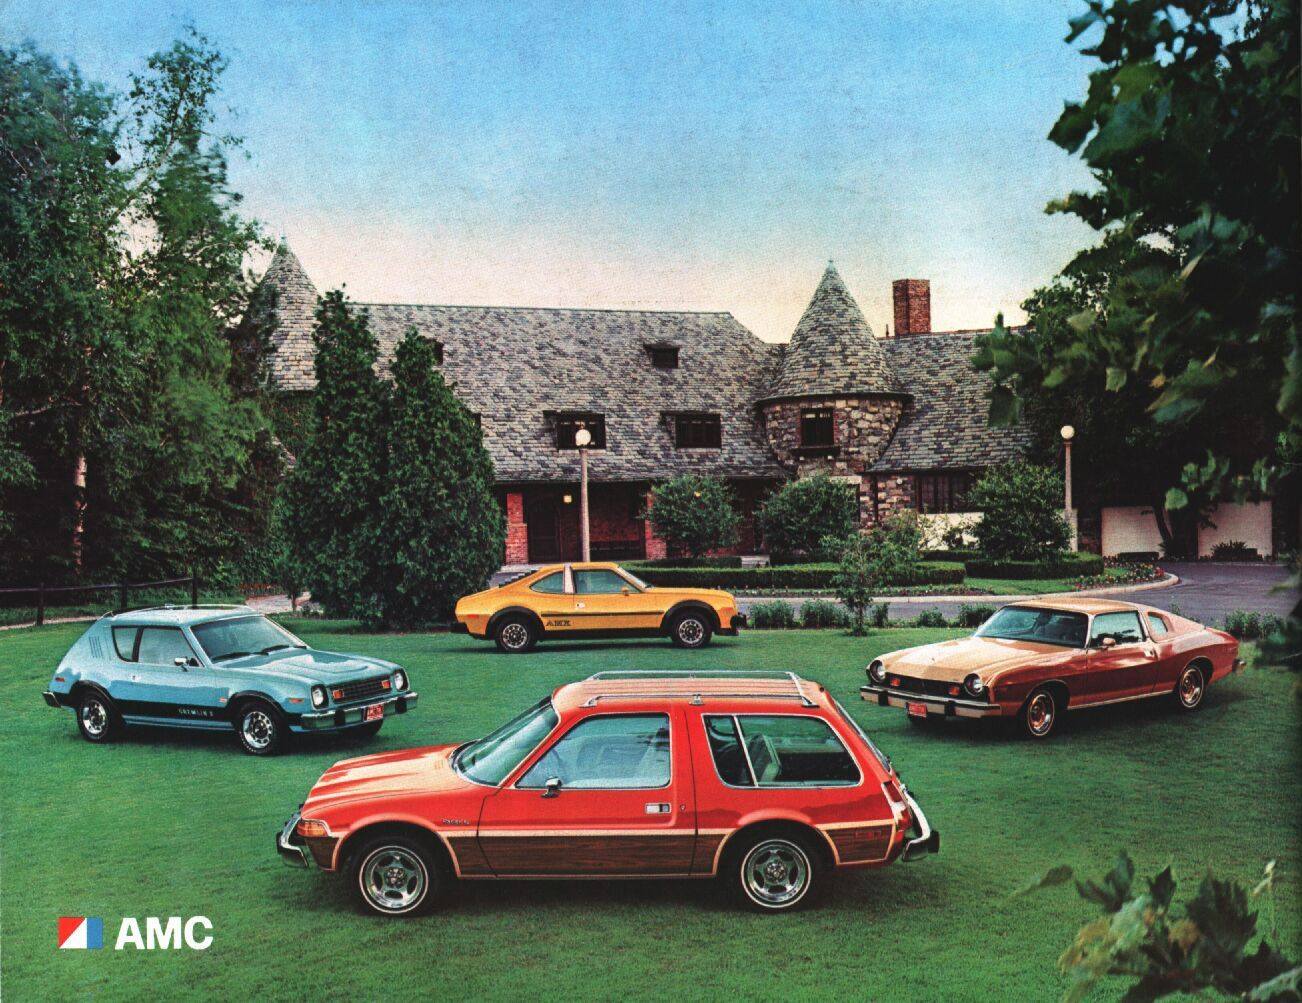 1978 Amc Full Line Gremlin Concord Pacer And Matador Cool Car Pictures Amc Amc Gremlin